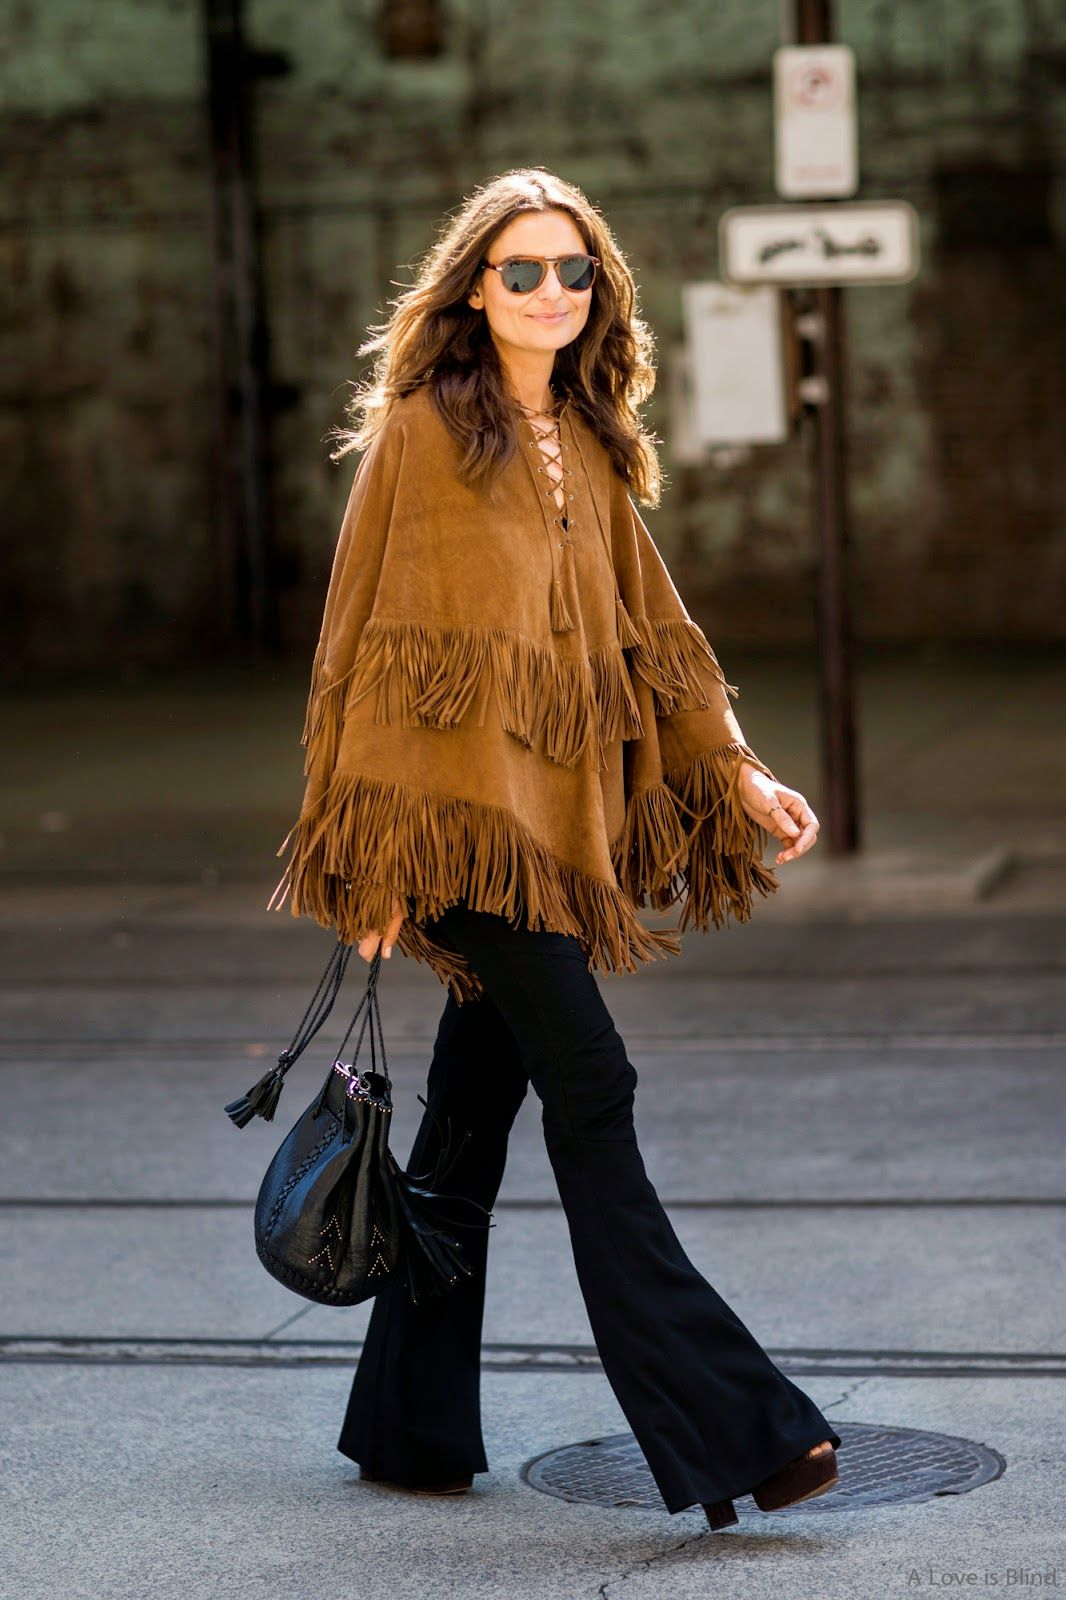 584fce55d Talitha fringed suede poncho, a Wendy Nichol bag and vintage Balmain  flares.Rare Vintage